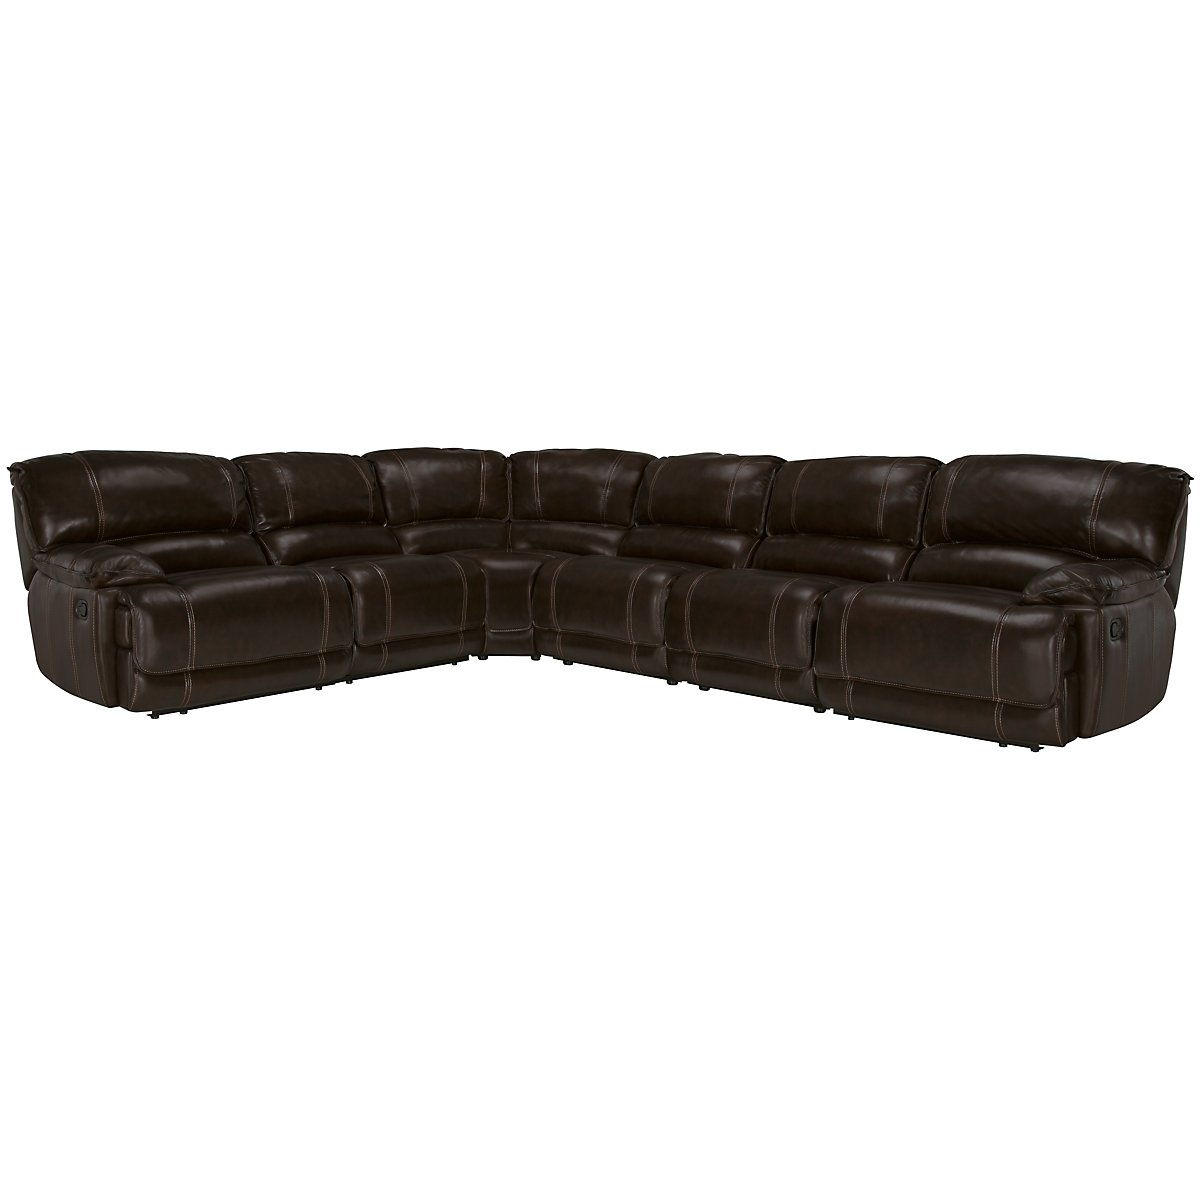 Benson Dk Brown Leather & Vinyl Large Two-Arm Power Reclining Sectional